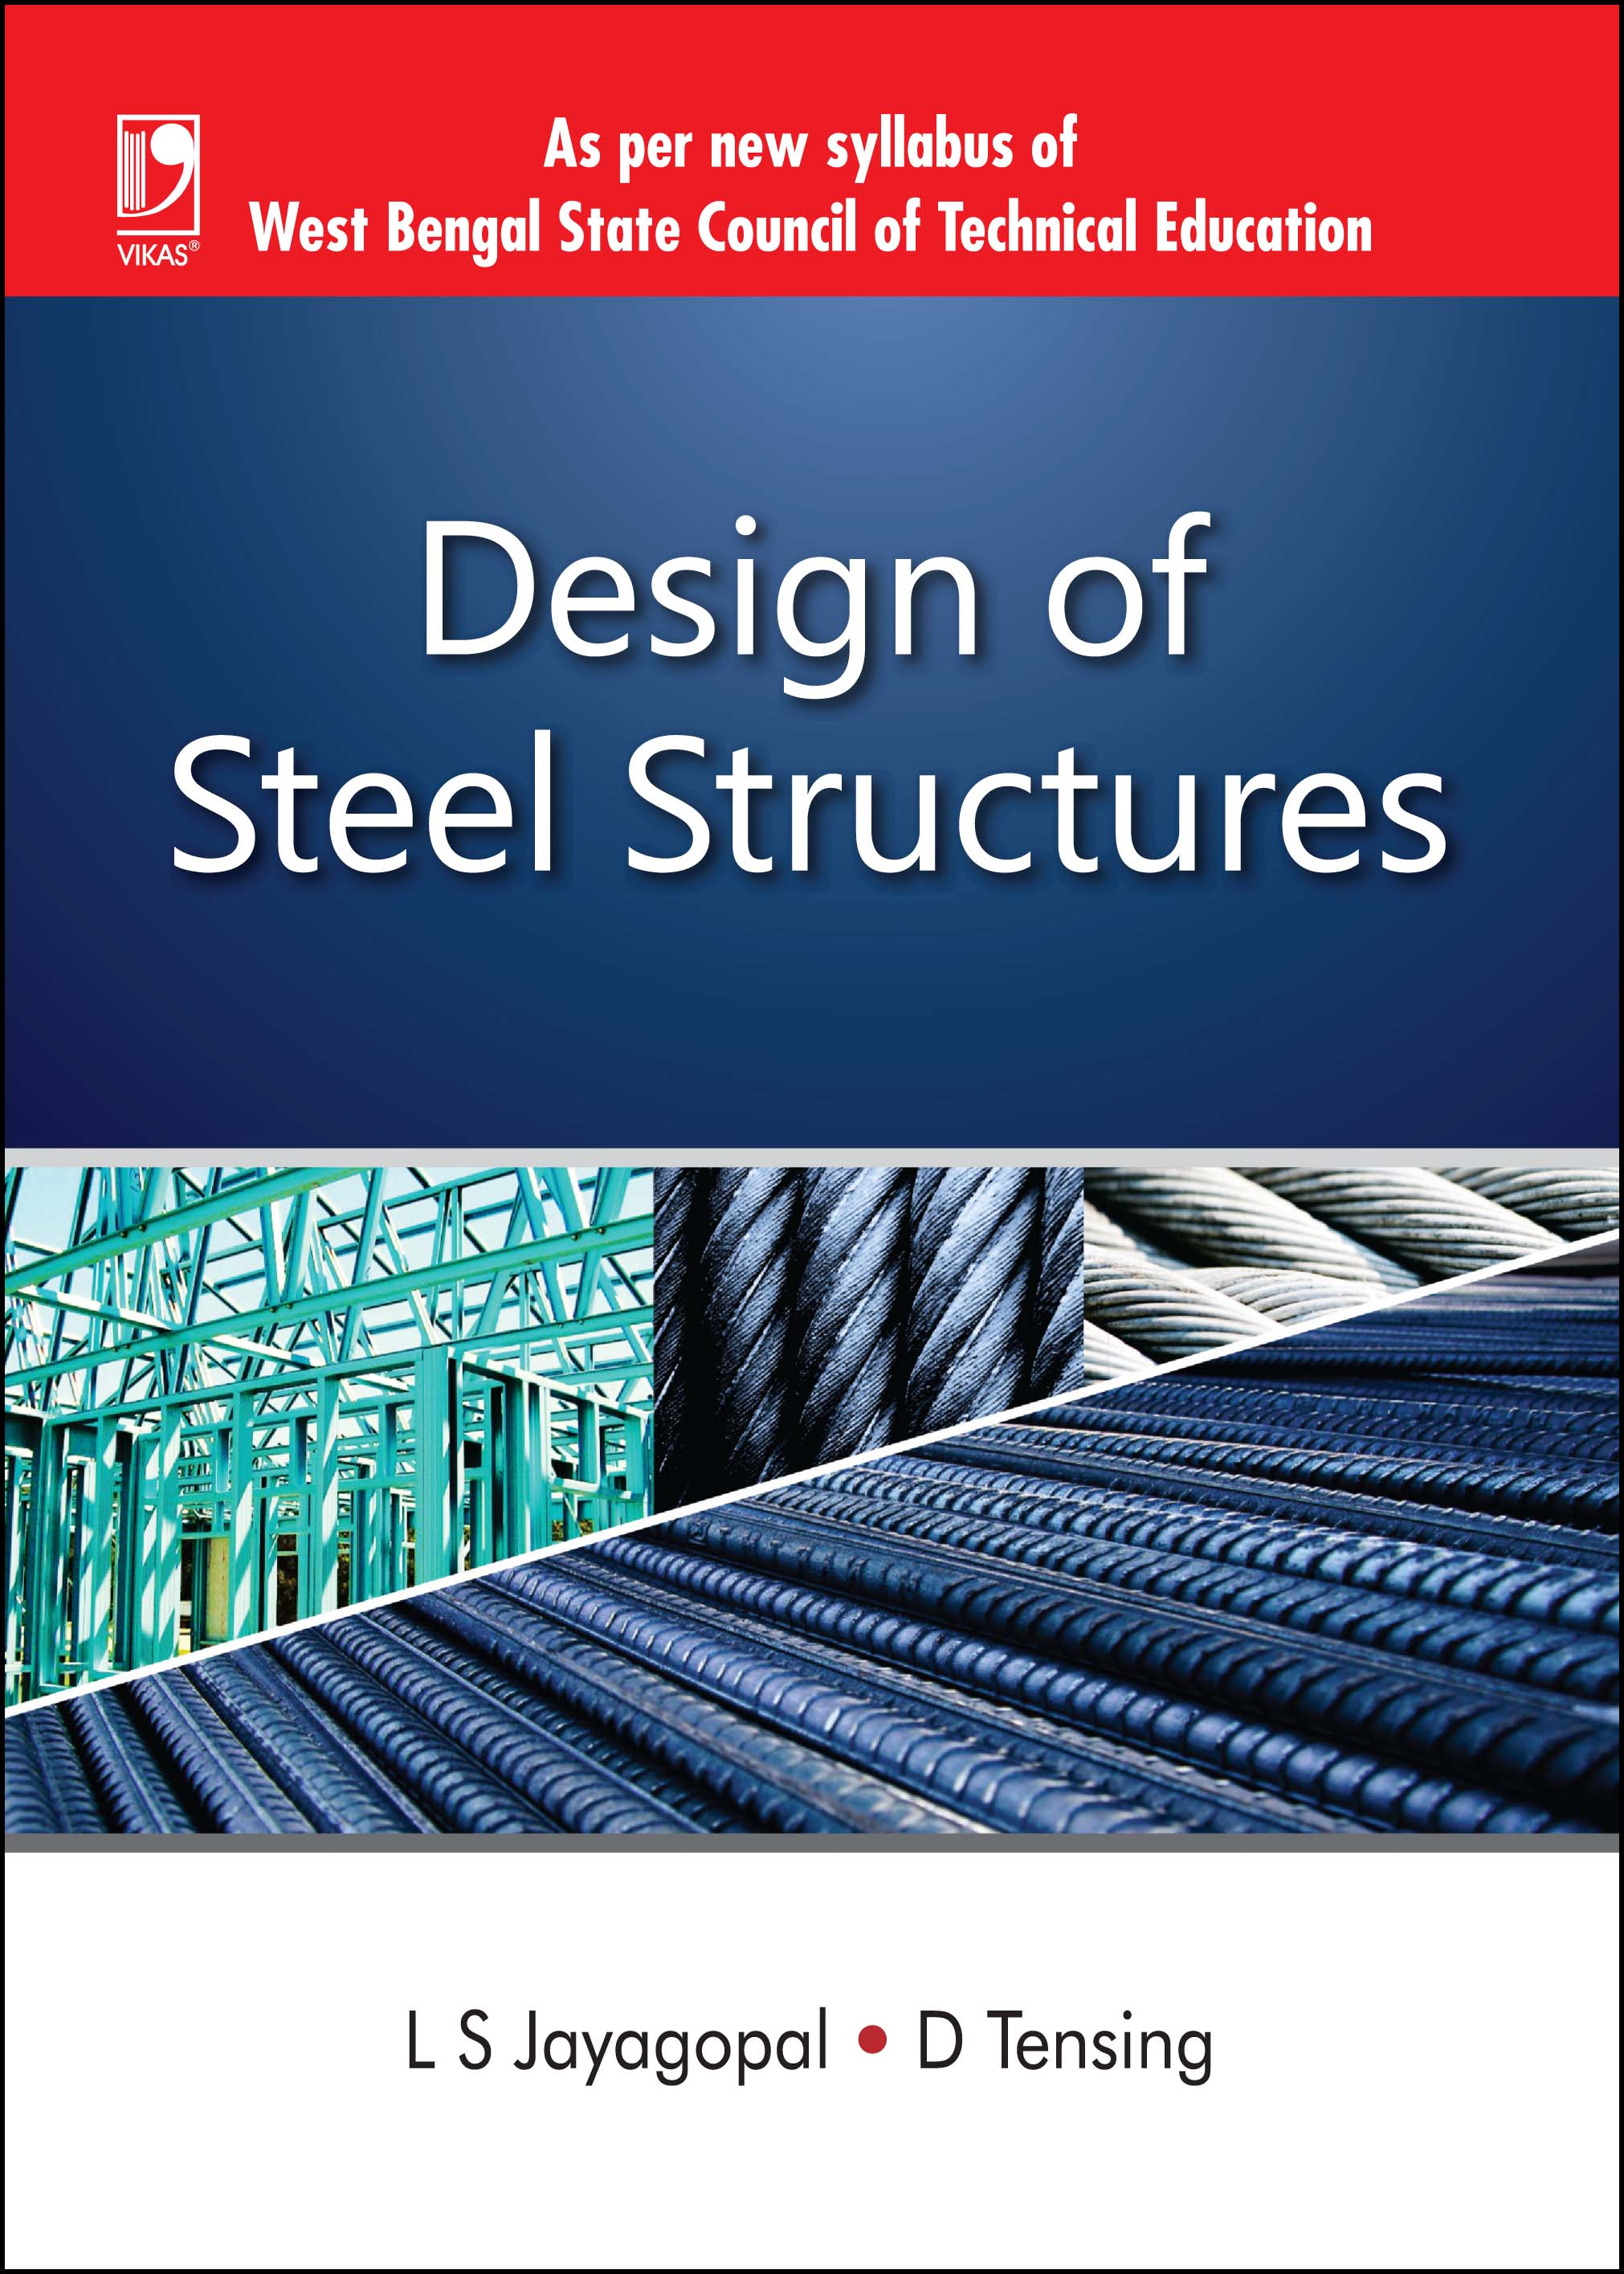 DESIGN OF STEEL STRUCTURES (FOR WBSCTE) by  L.S. JAYAGOPAL